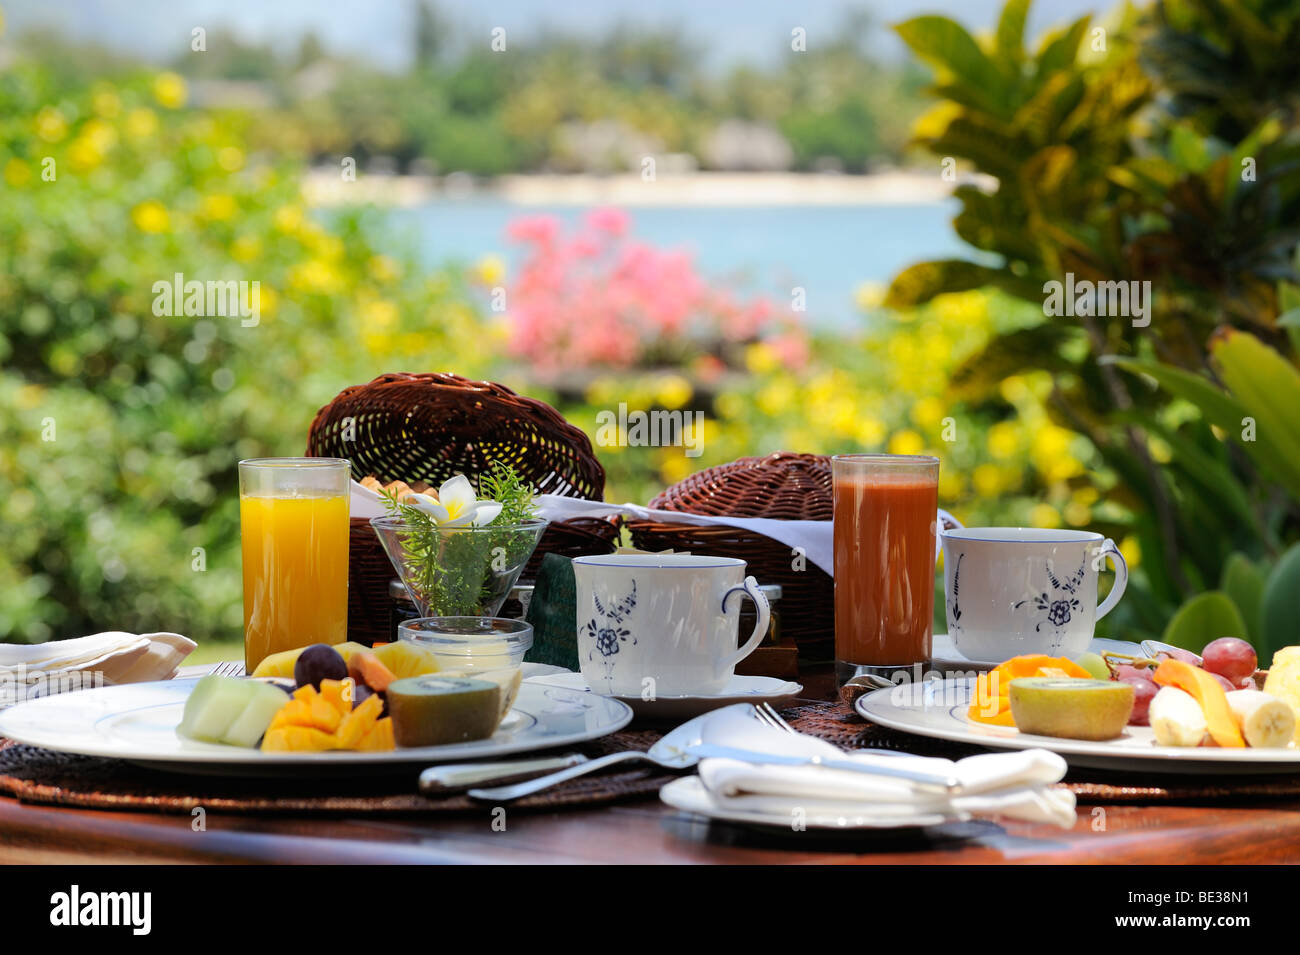 Oberoi hotel mauritius breakfast on the terrace stock for Terrace hotel breakfast